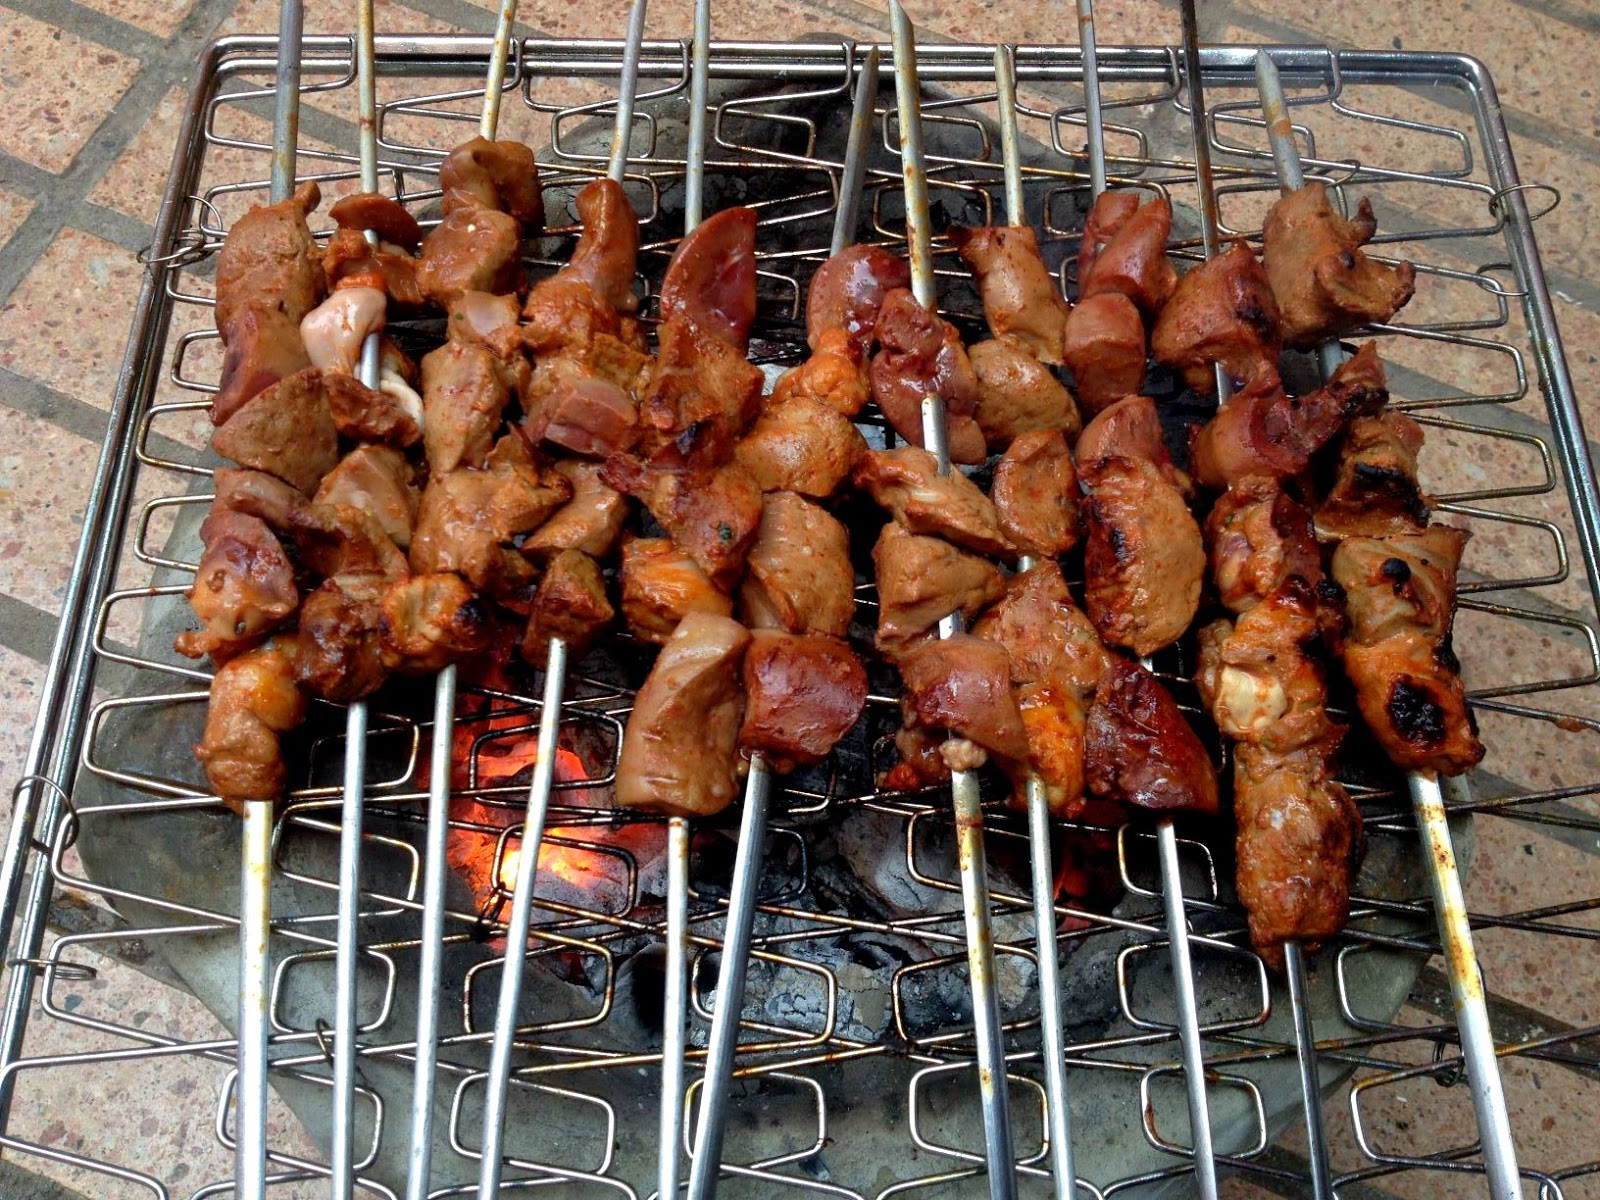 liver, heart and kidney brochettes cooking over charcoal